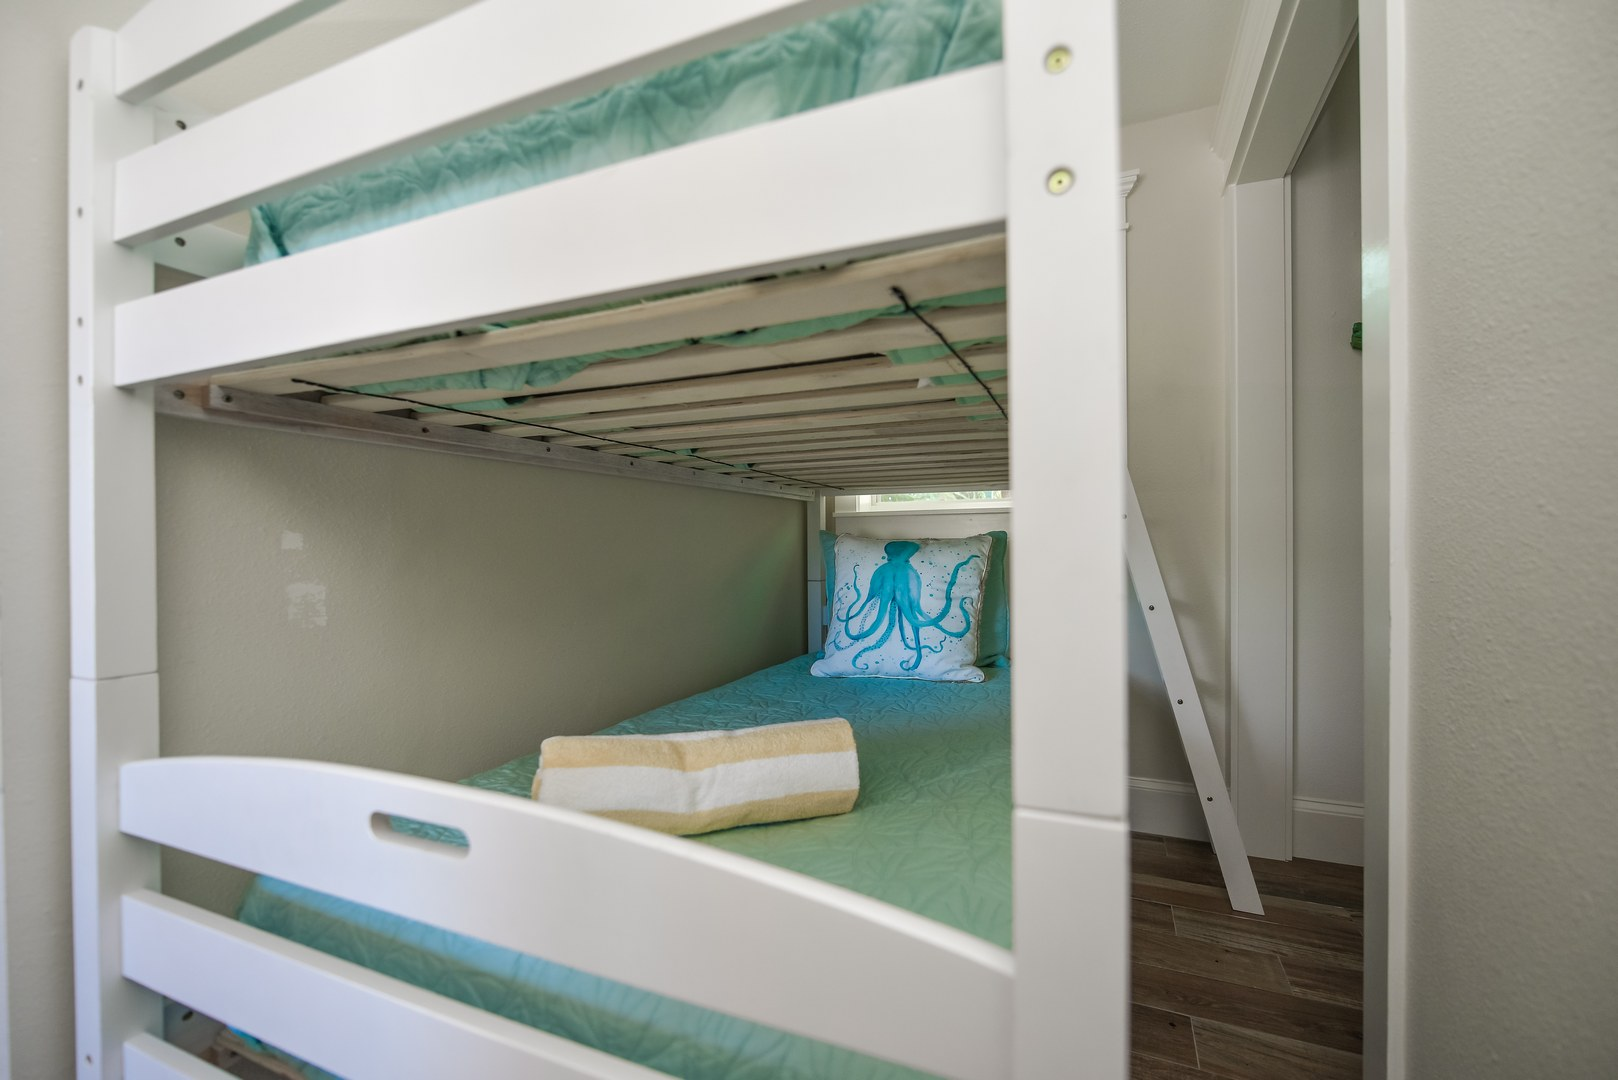 Bunk Beds - Your kids will love them - Room Sleeps 6